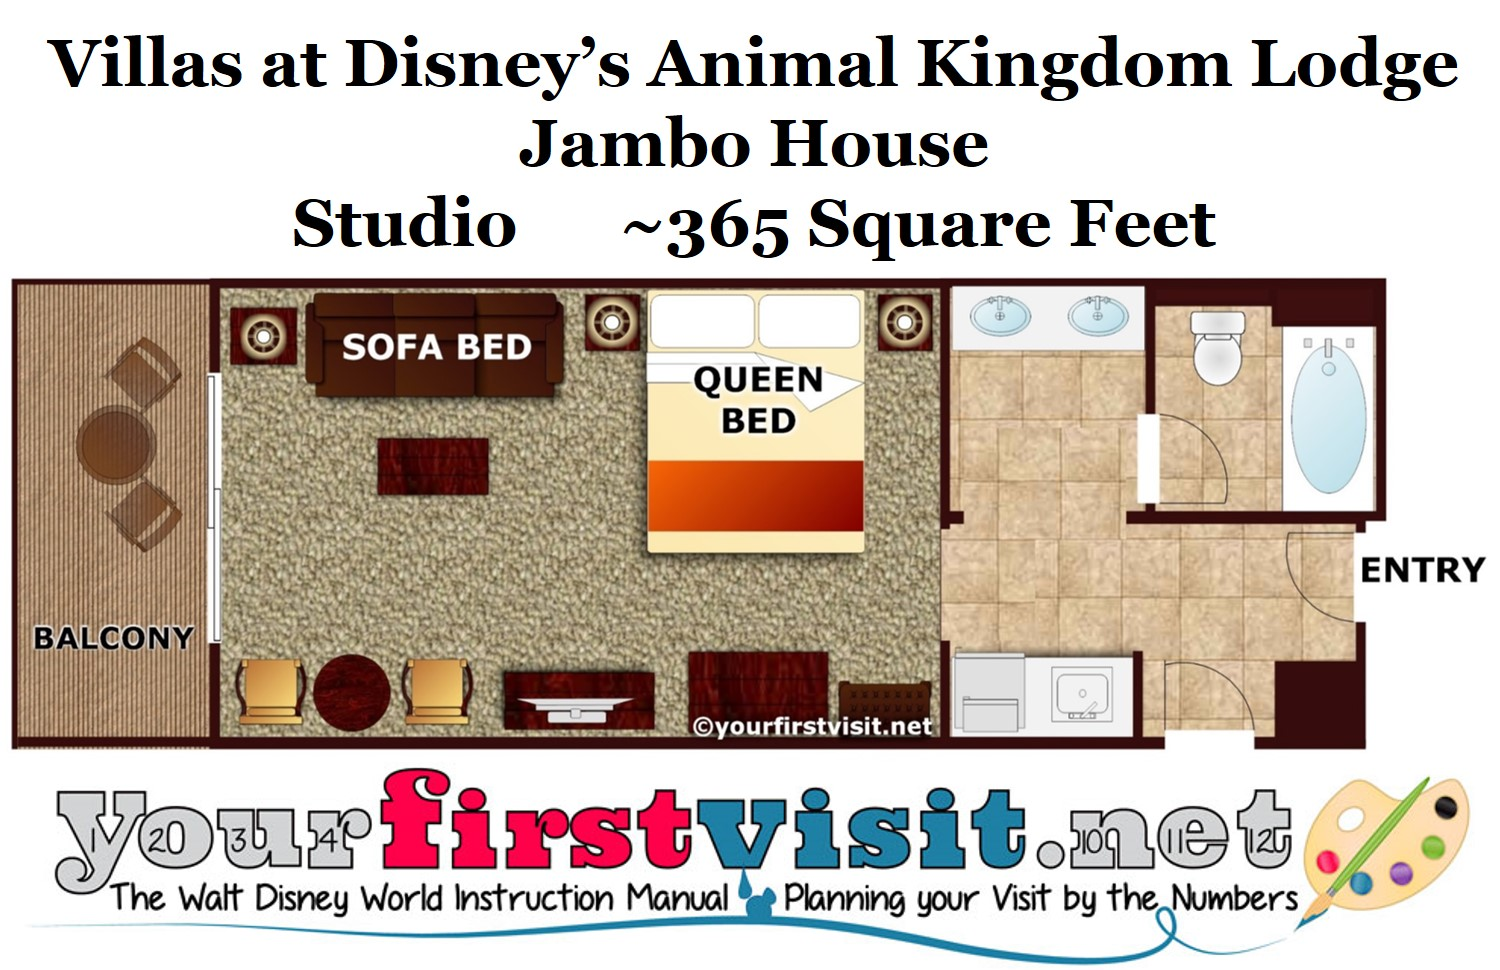 Photo tour of a studio at disney 39 s animal kingdom villas jambo house for Animal kingdom 2 bedroom villa floor plan